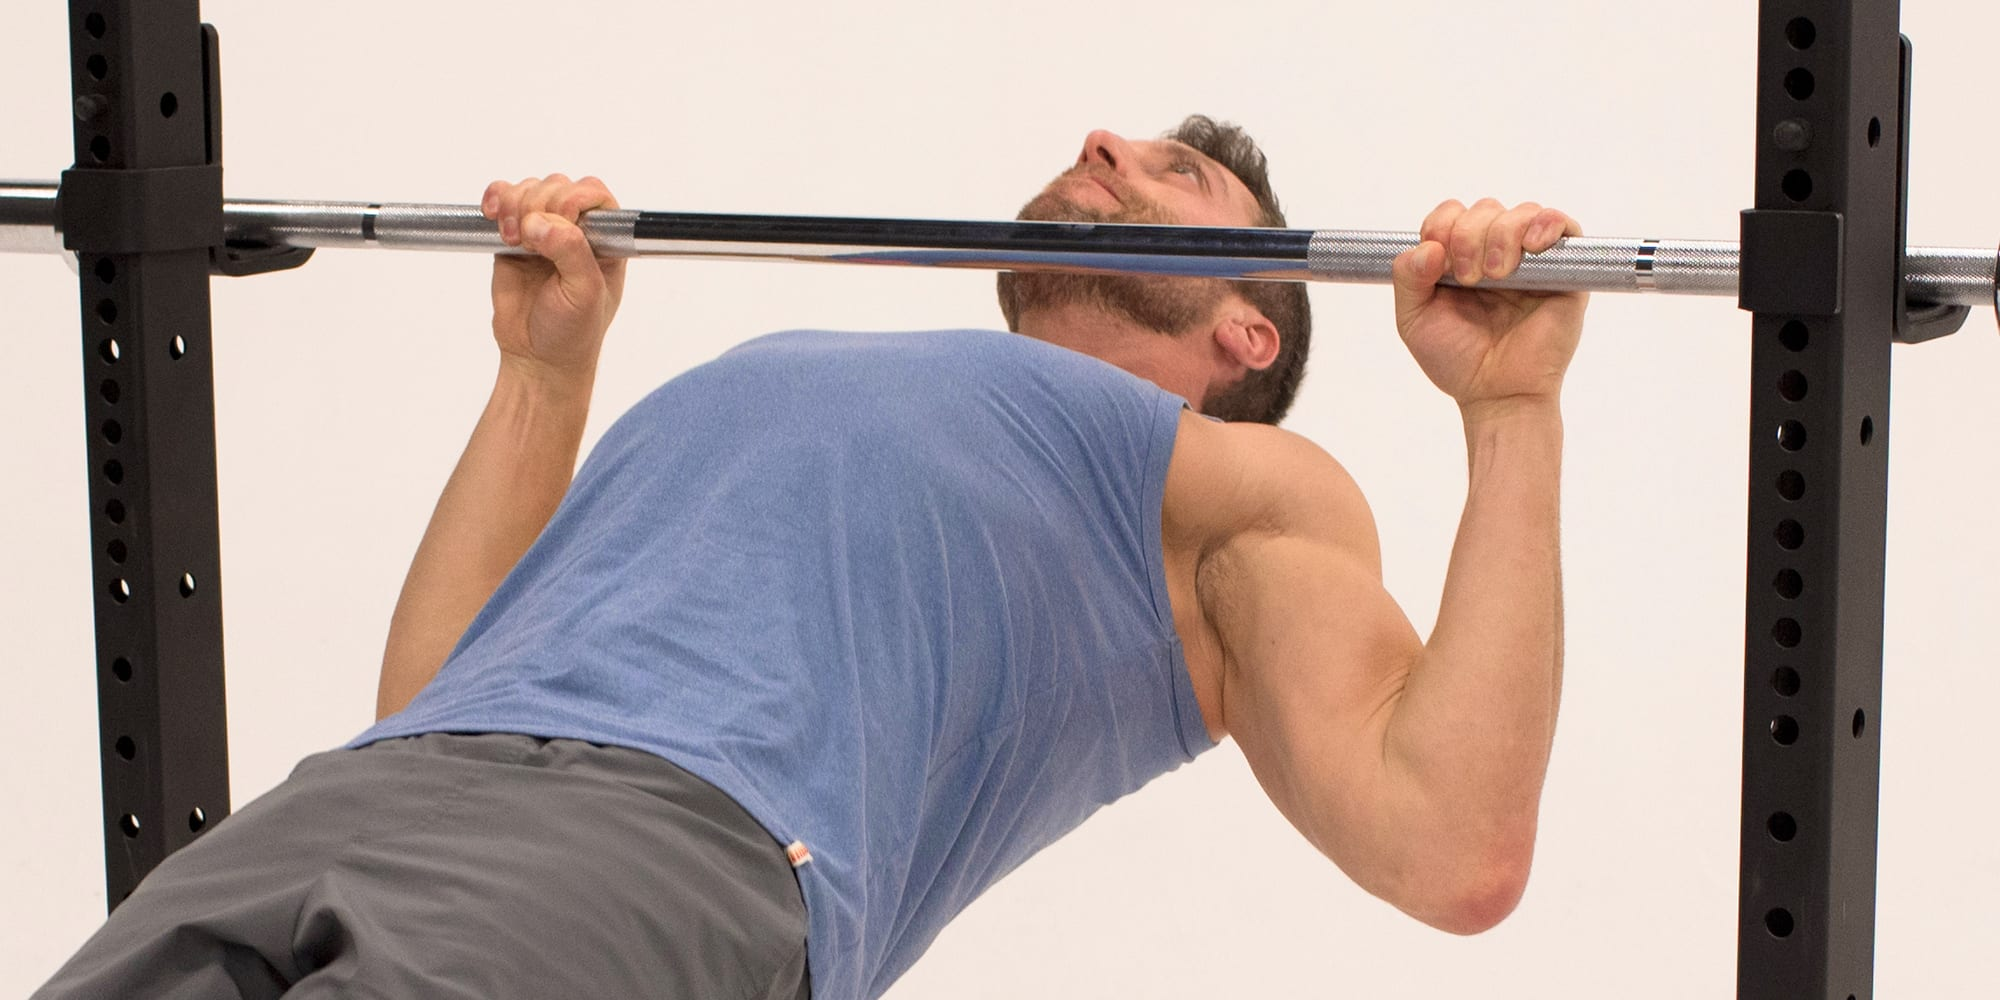 7 of the Best Rear Delt Exercises to Build Your Shoulders